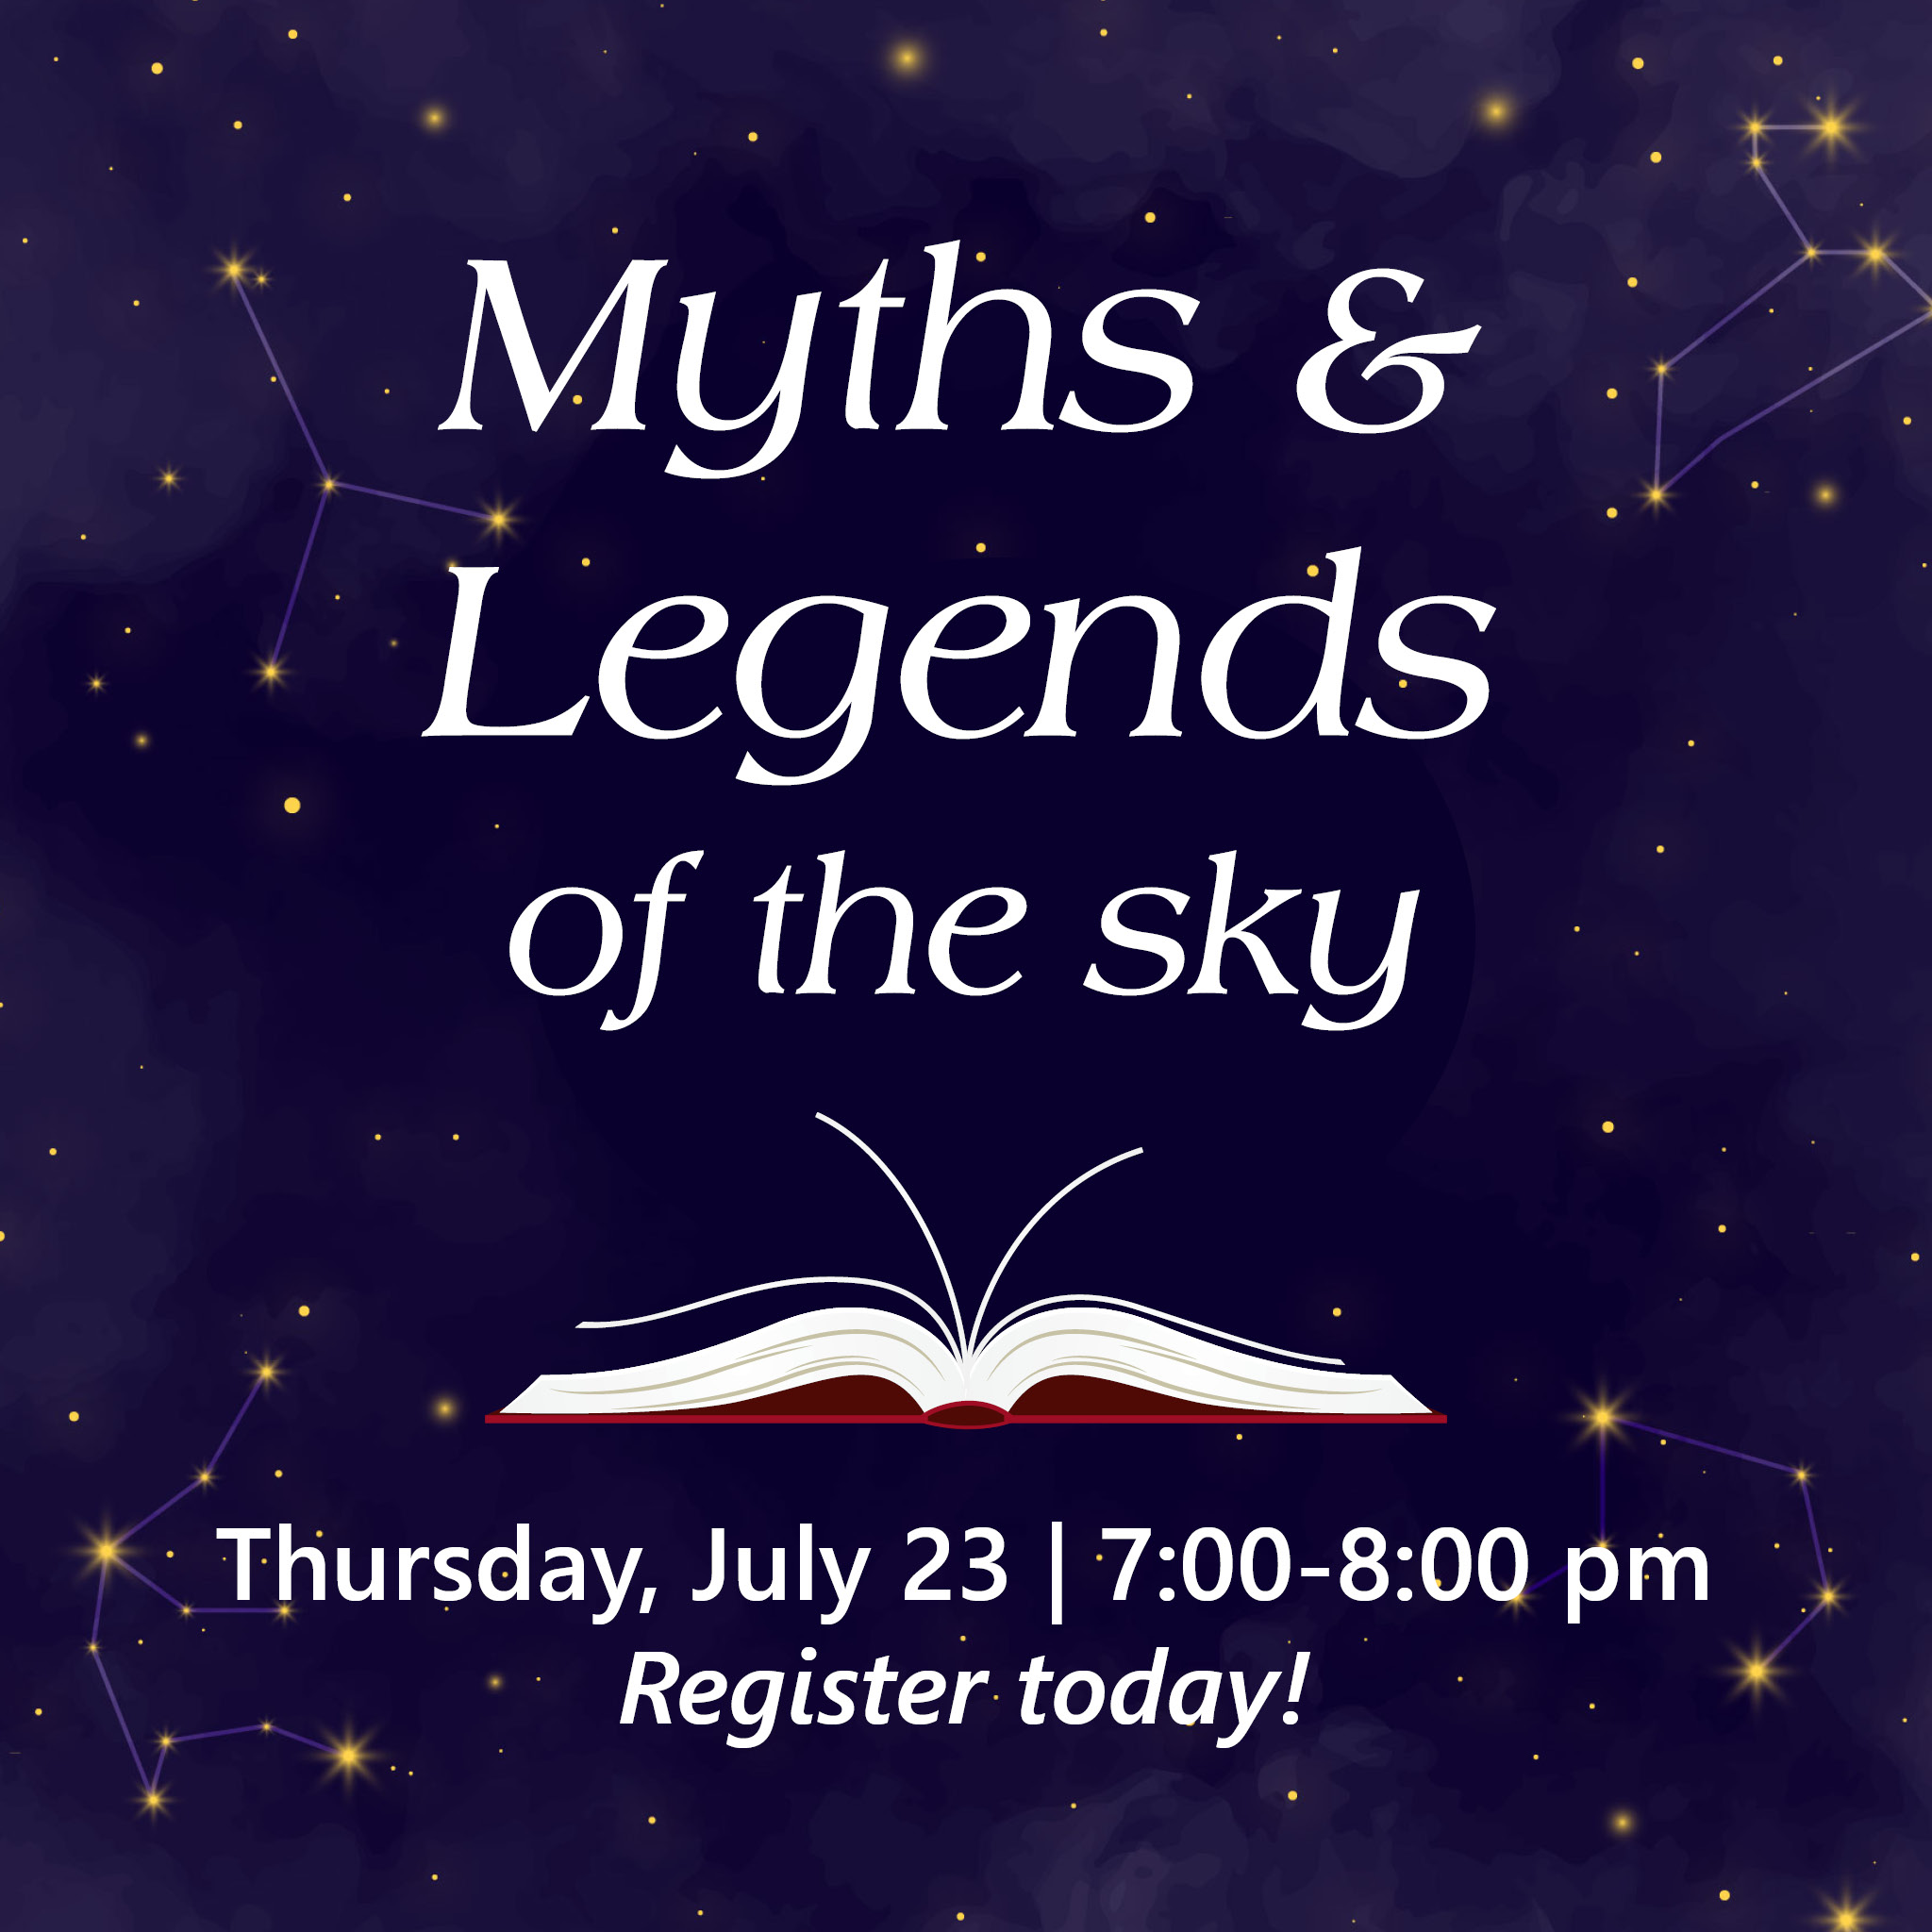 Myths and Legends of the Sky